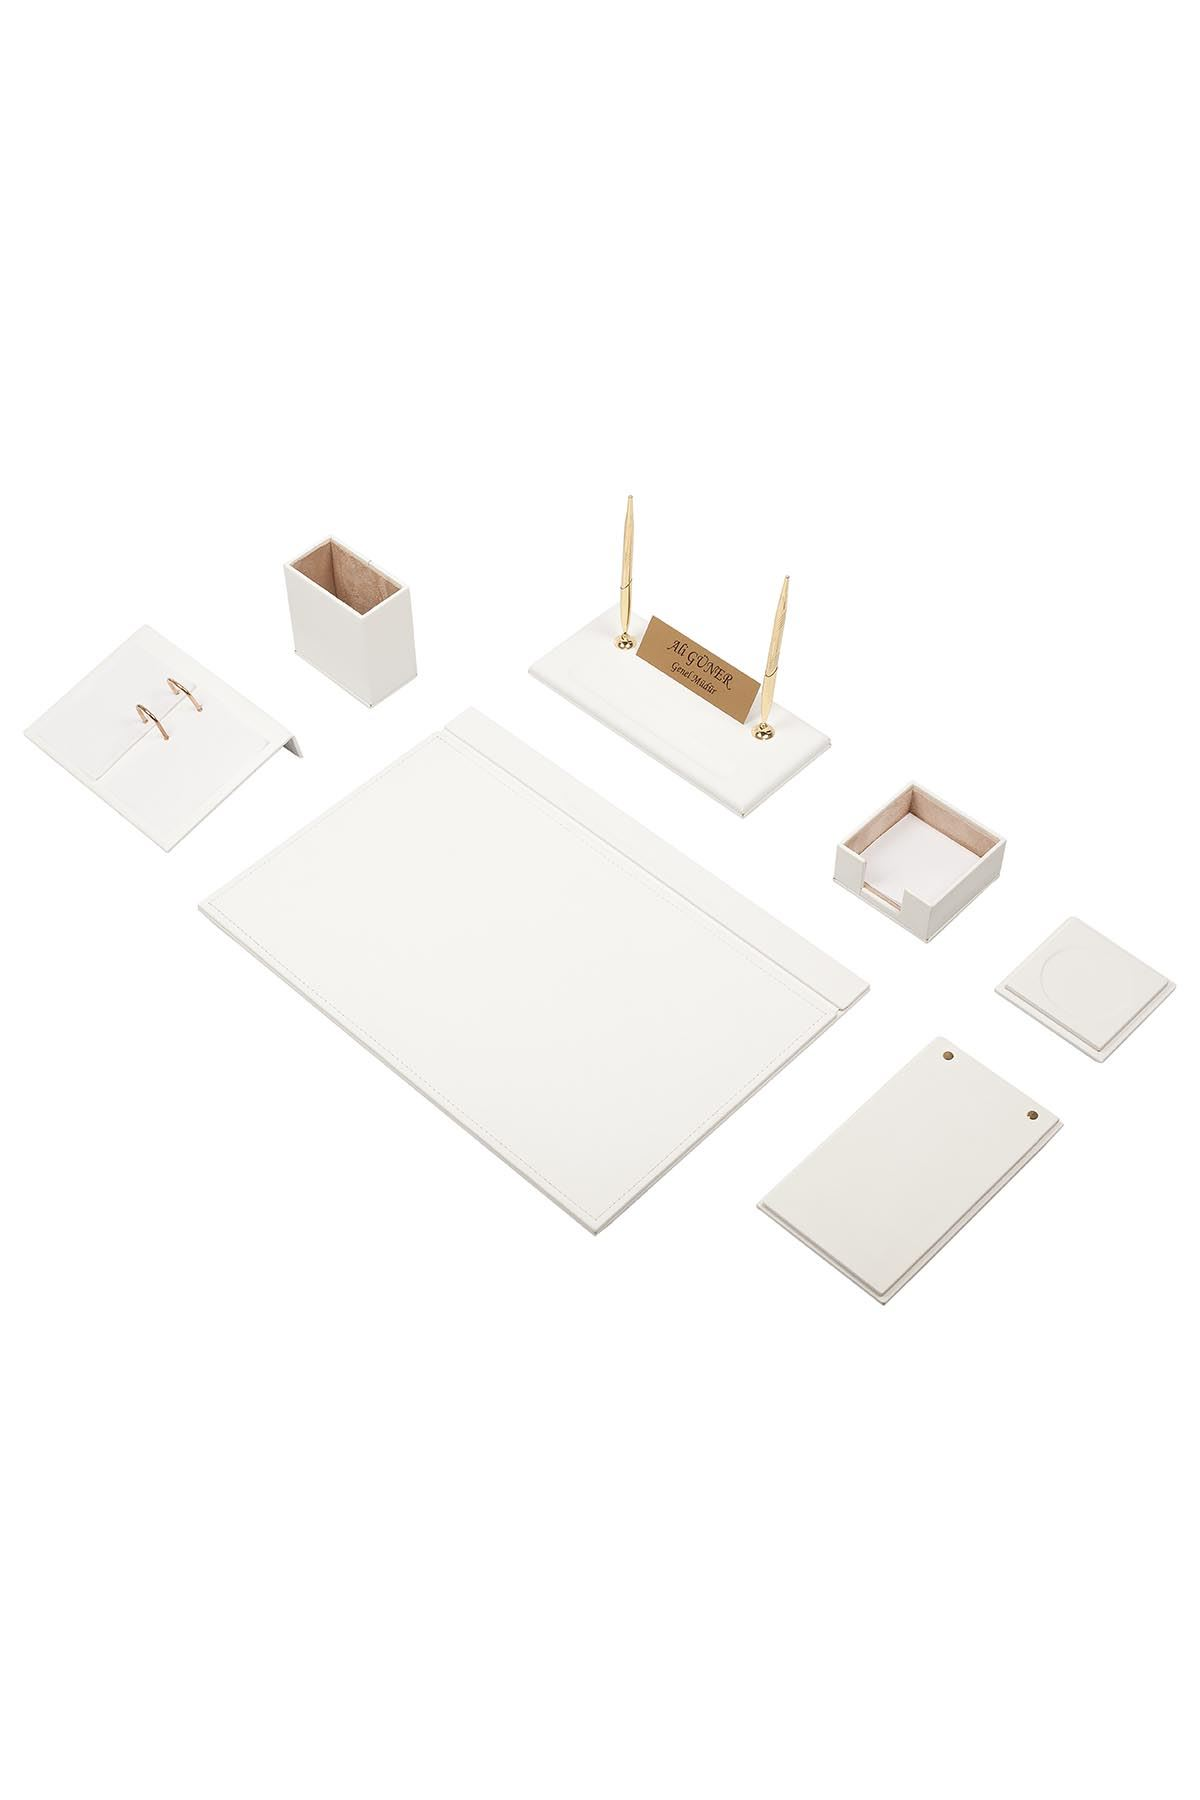 Leather Desk Set 9 Accessories White